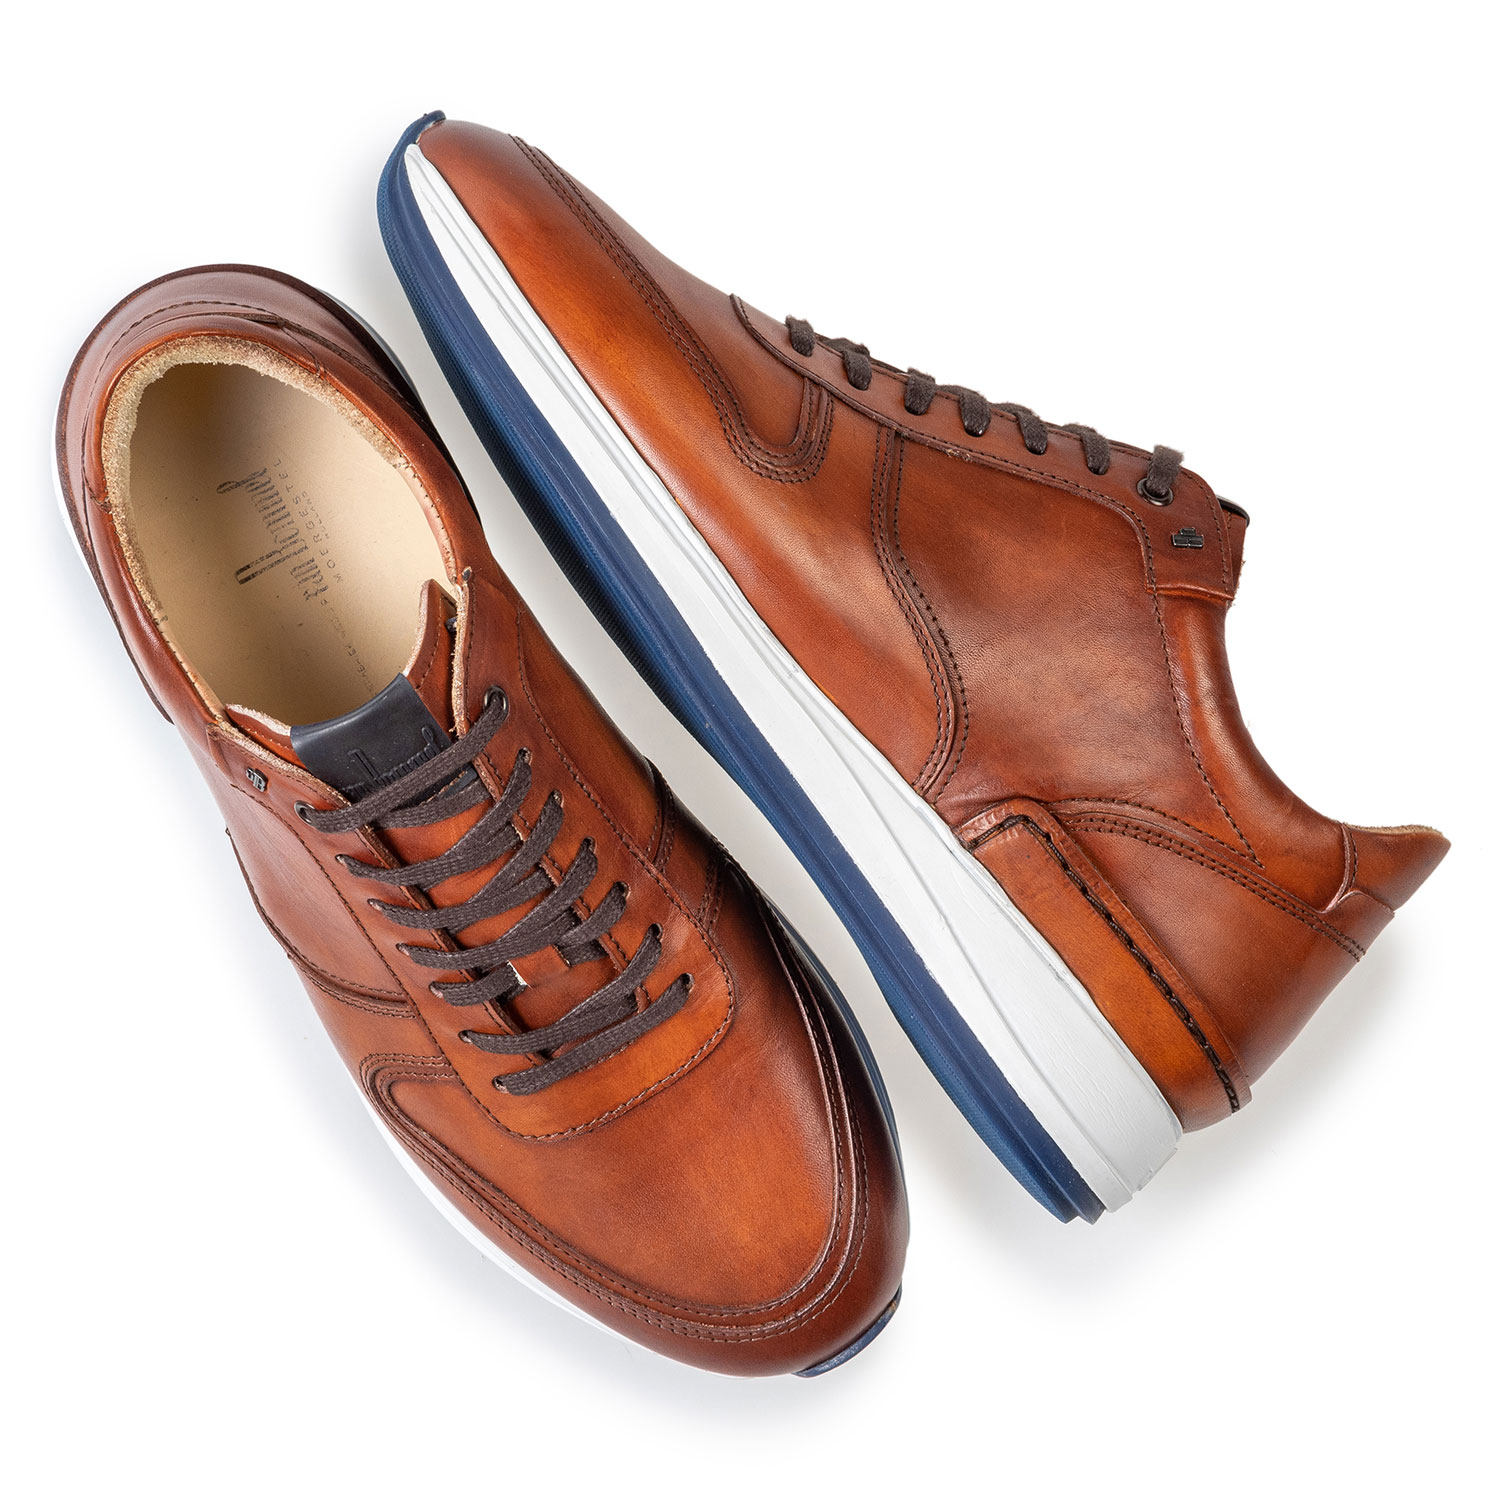 16334/00 - Sneaker calf leather cognac